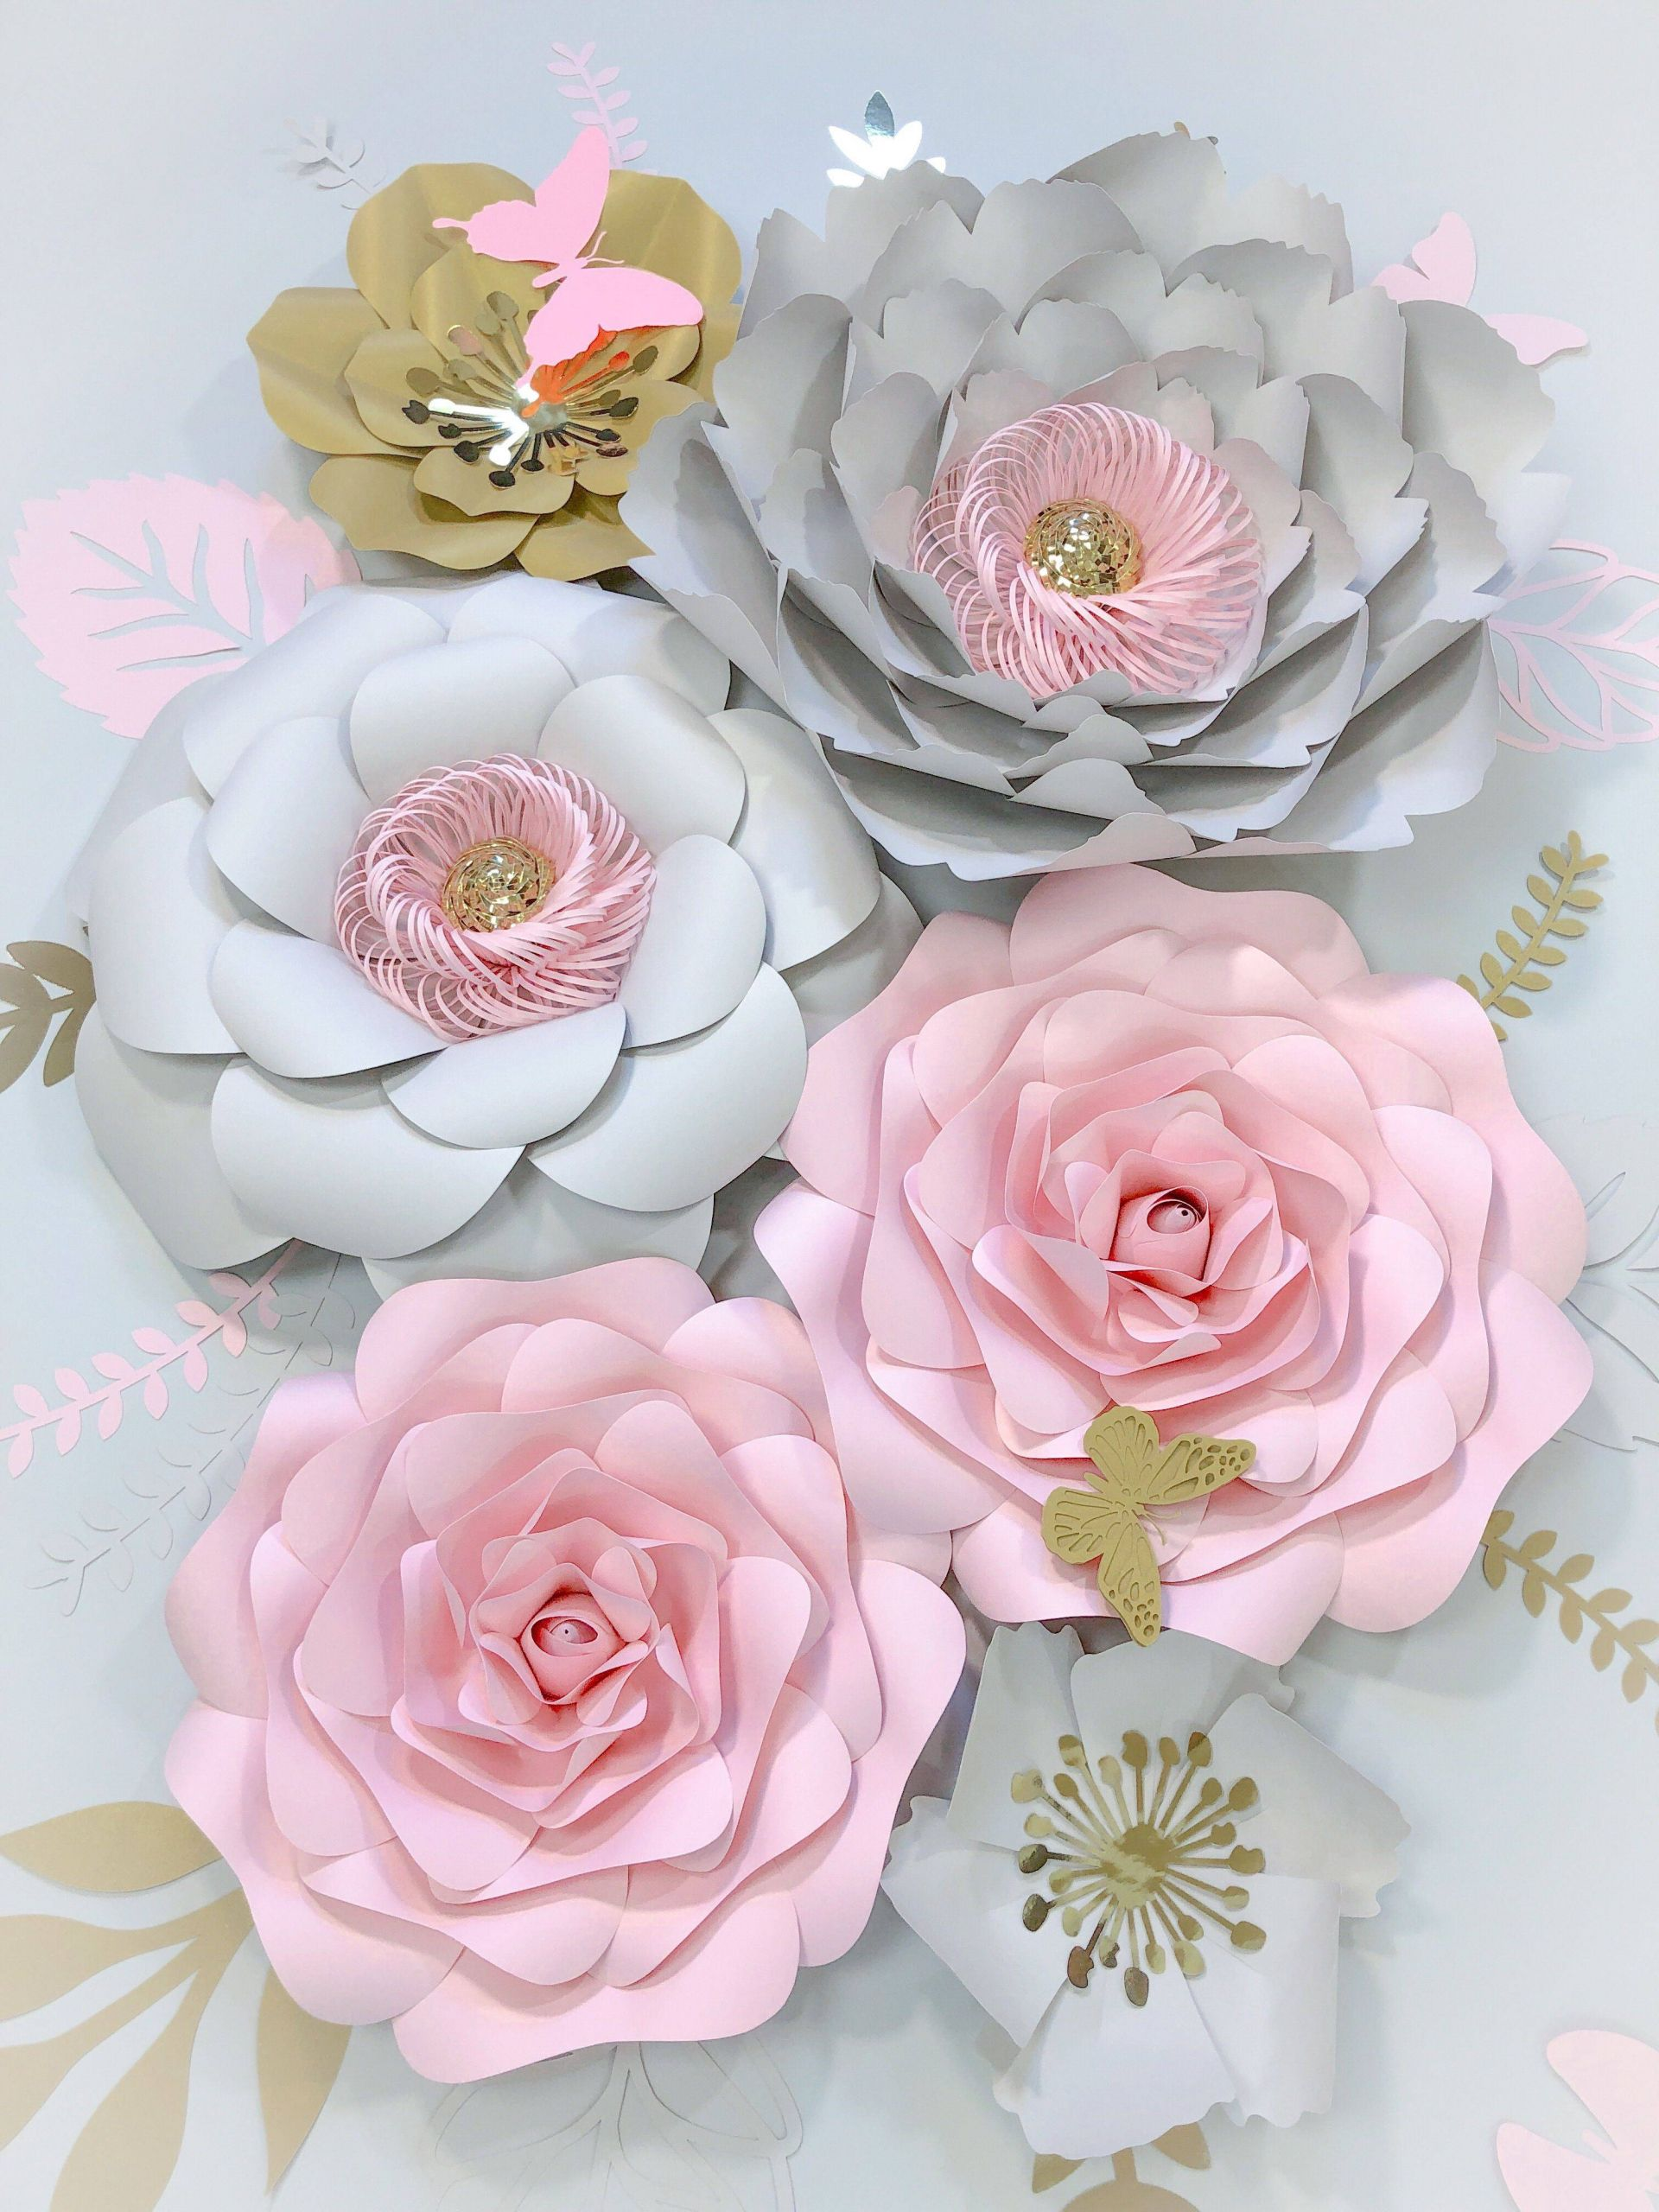 Paper Flowers Decorations Wedding Luxury Paper Flowers Wall Decor Blush Grey Nursery Girl 3d